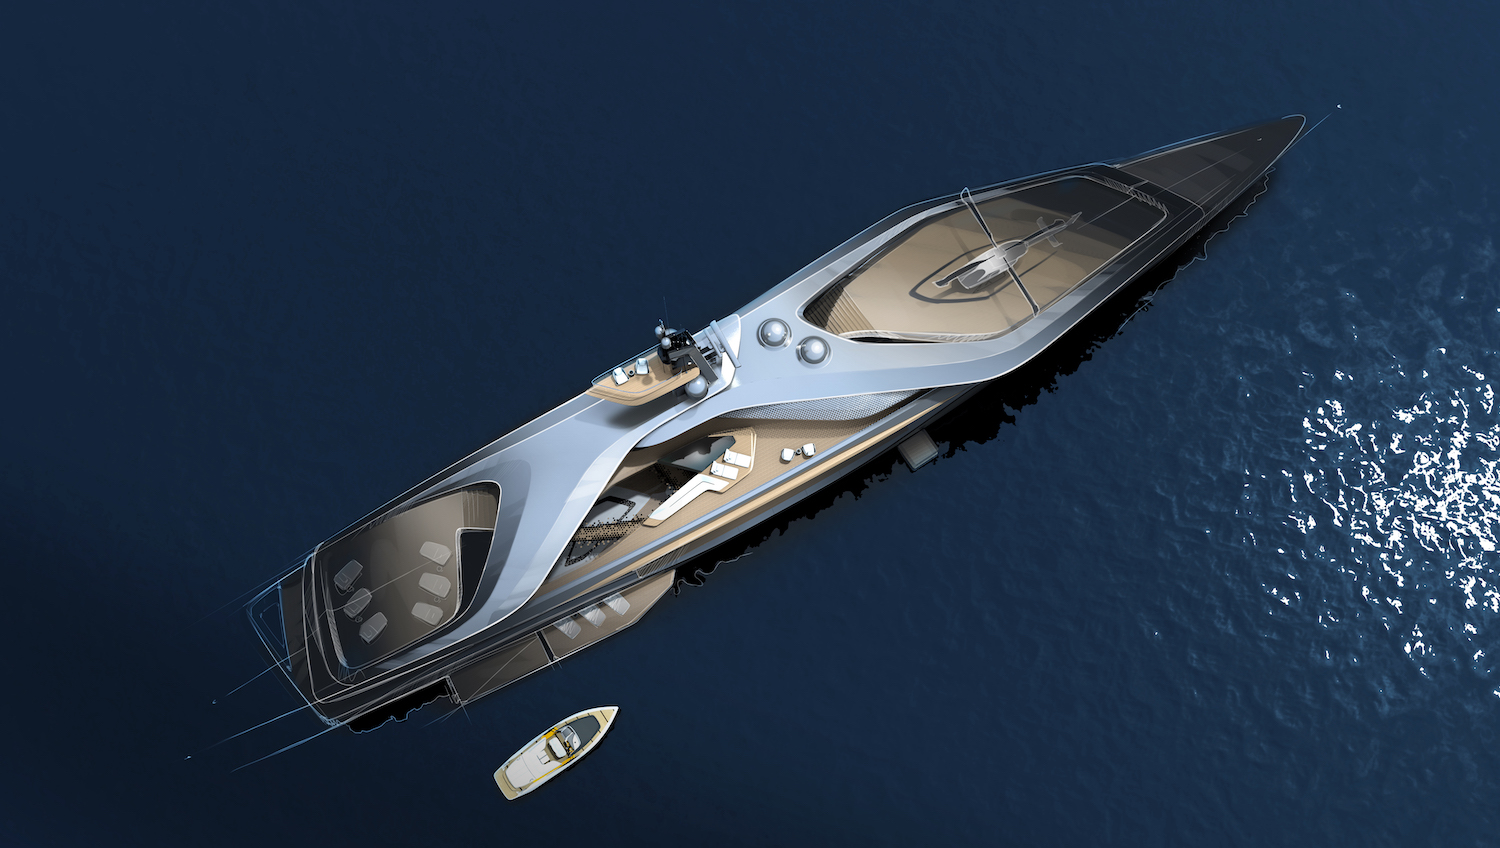 Oceanco, Pininfarina and Lateral have joined forces to innovate yacht design with Kairos